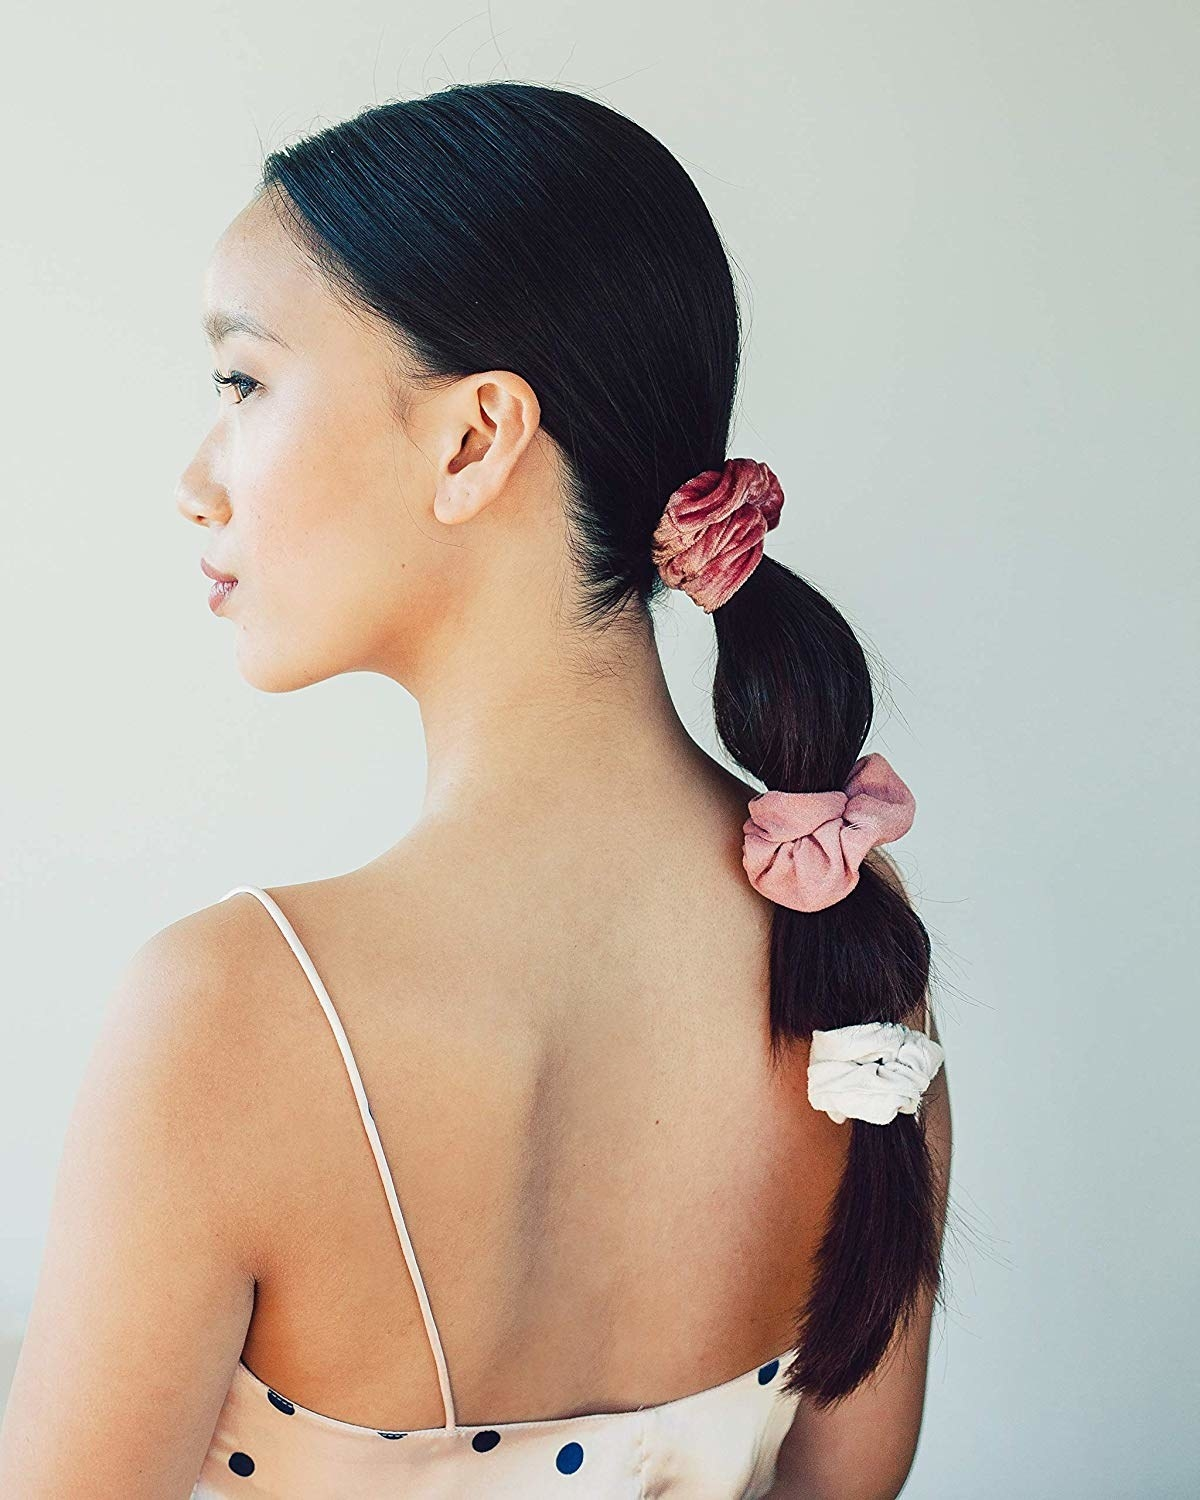 A model with three scrunchies in an ombre pattern down their long ponytail